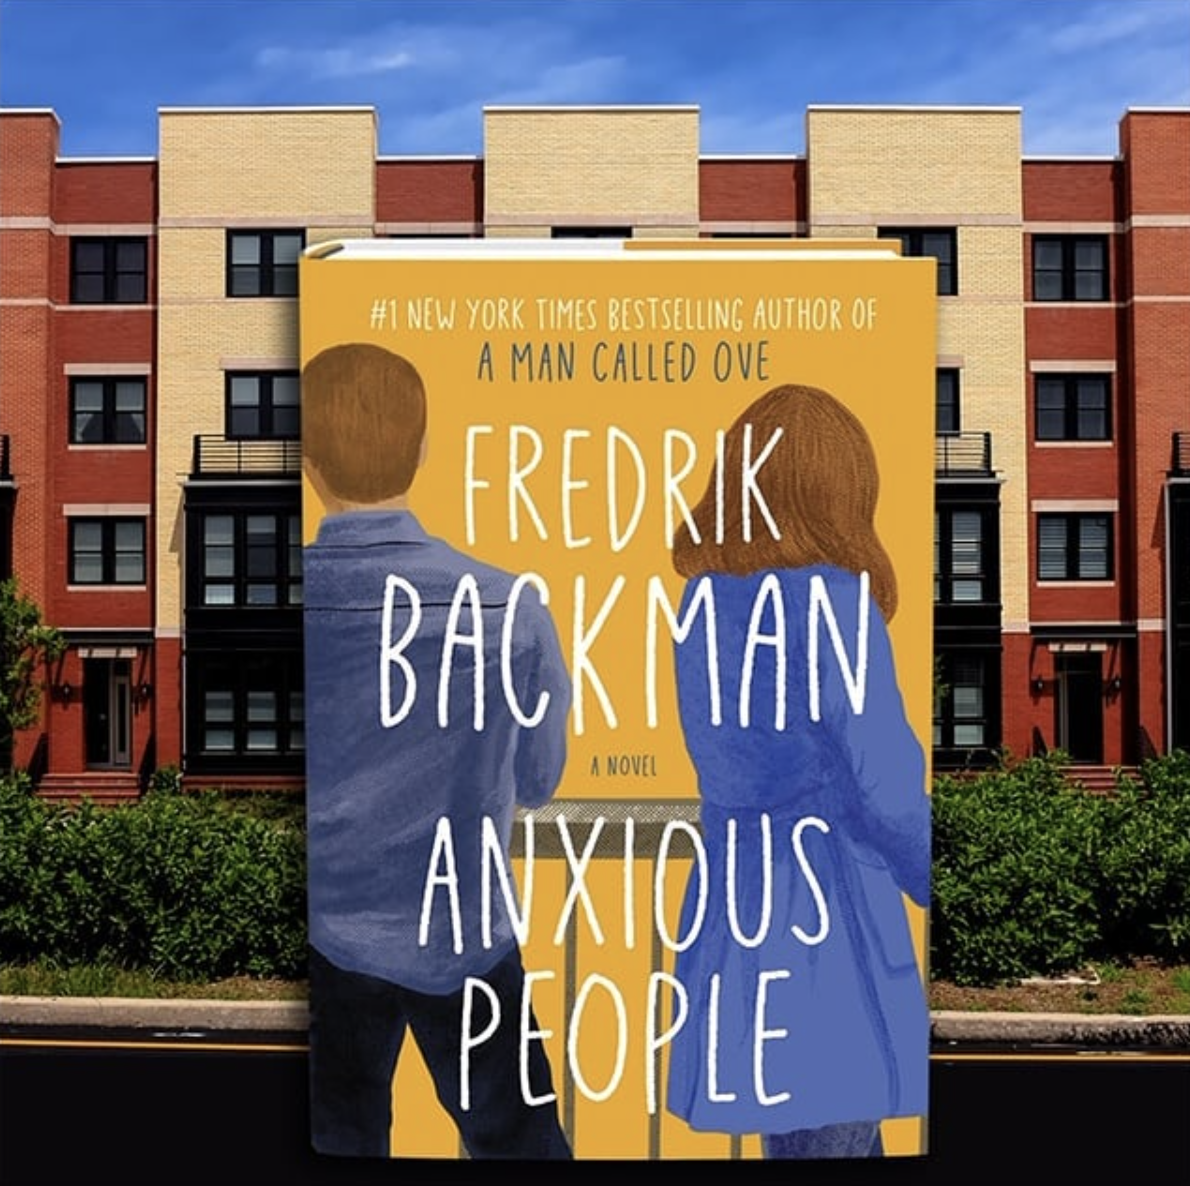 the cover of fredrik backman's book anxious people which shows the back of two people